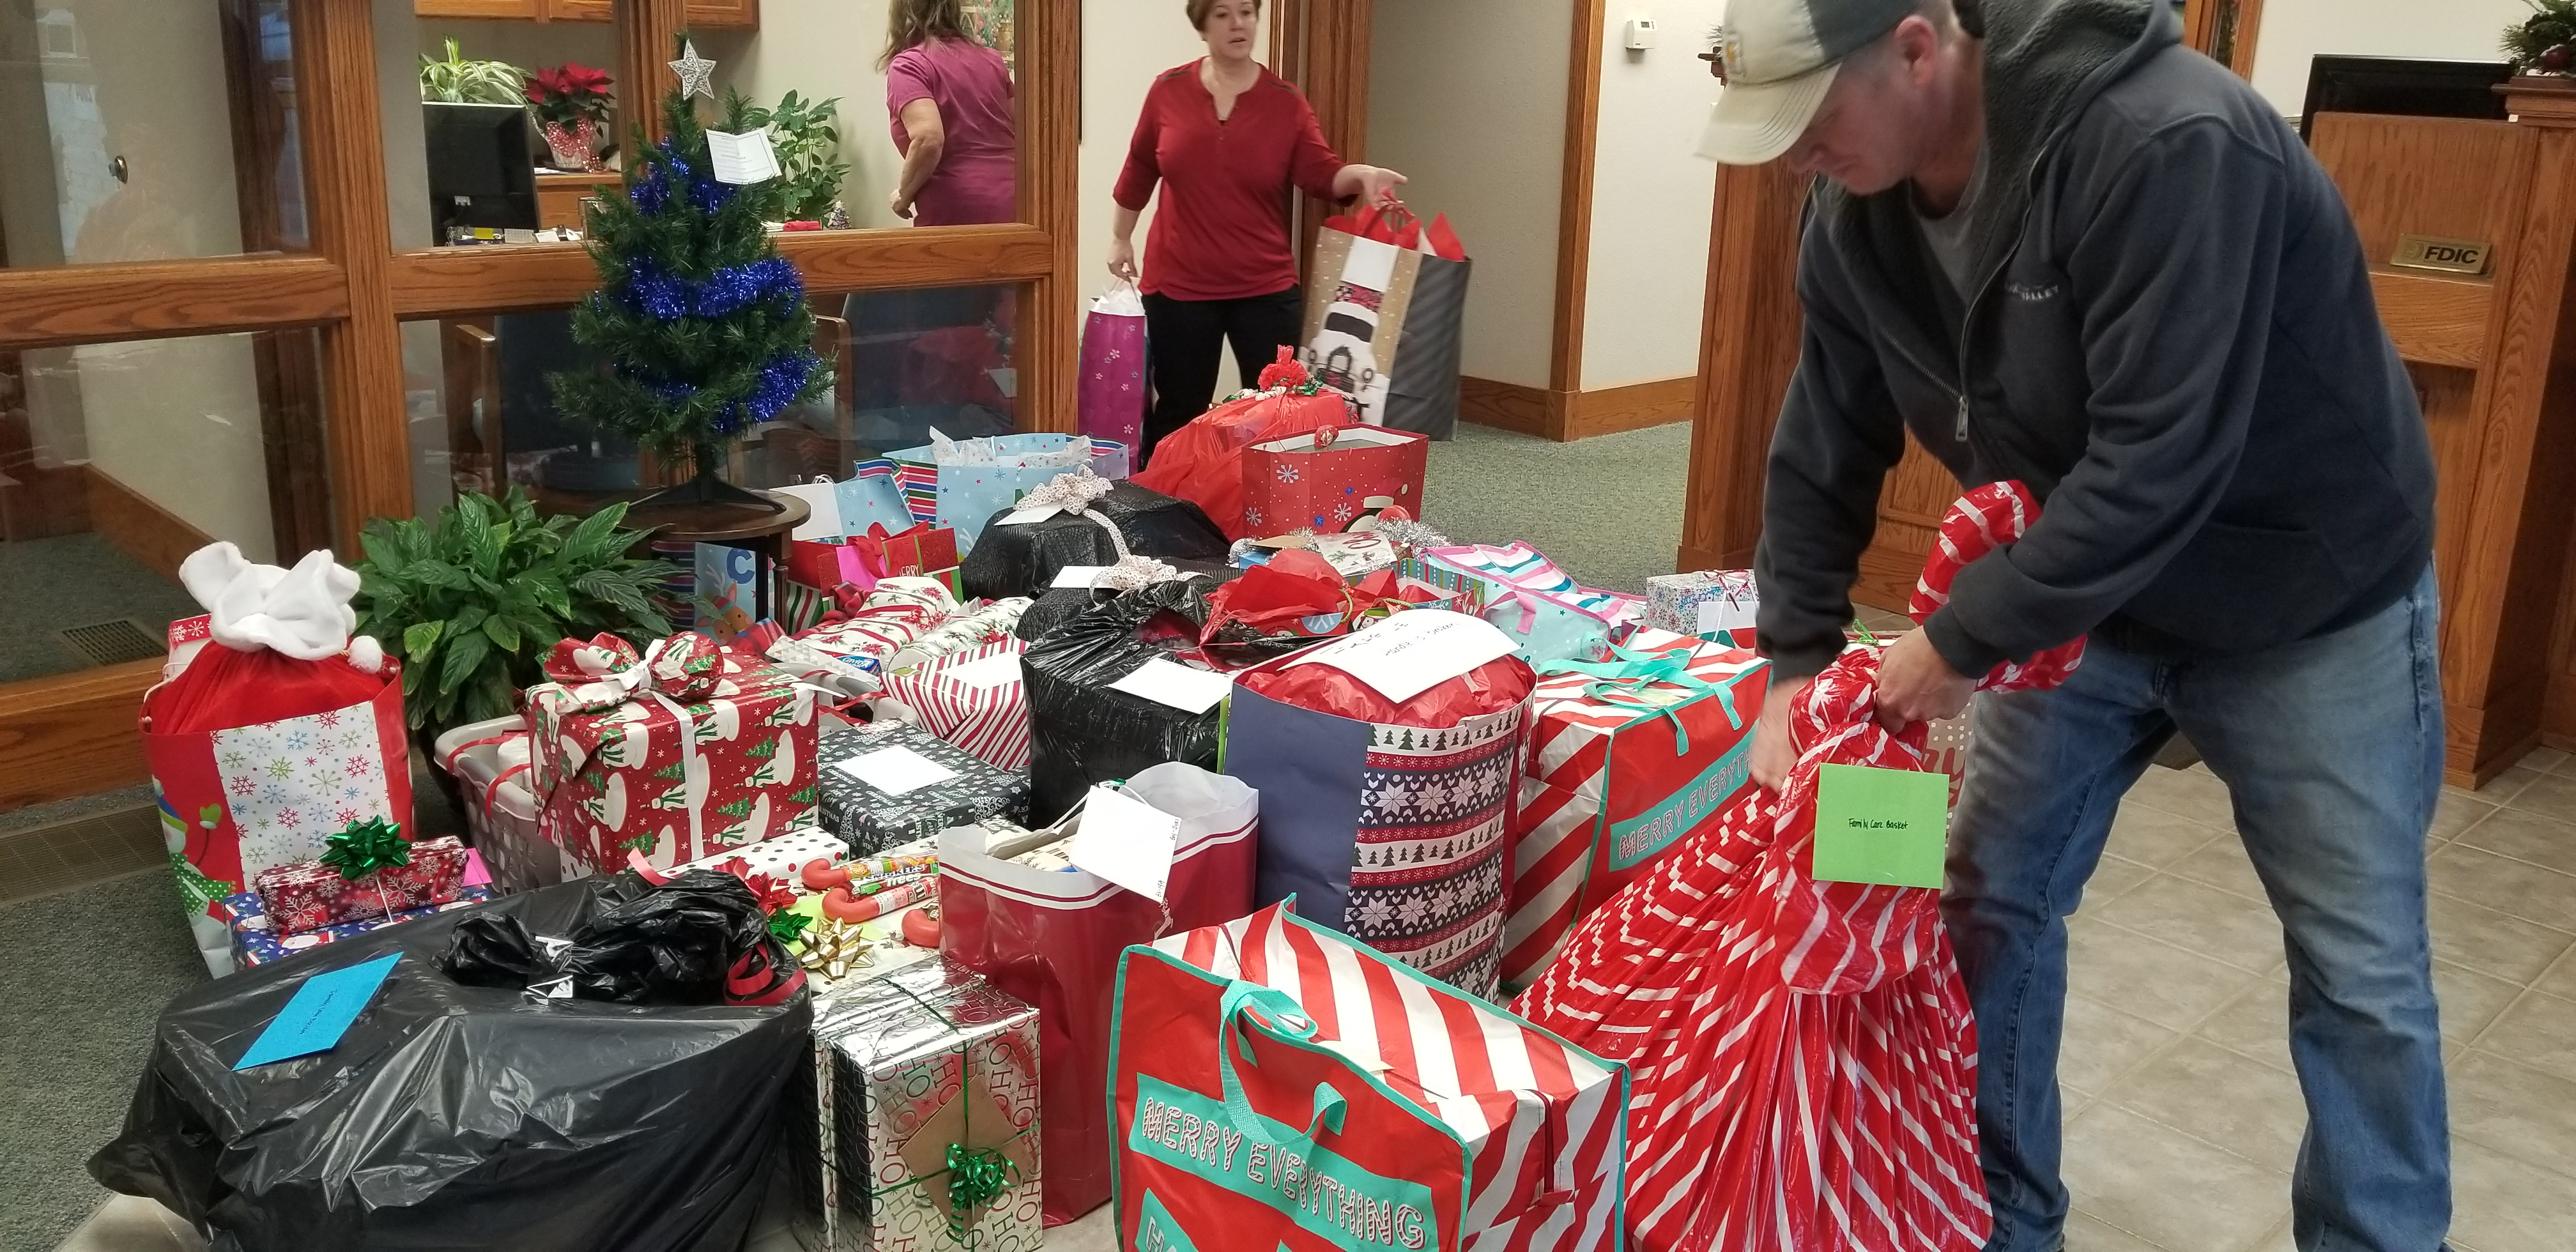 Blue Valley Telecommunications employee carries away the gifts for distribution.